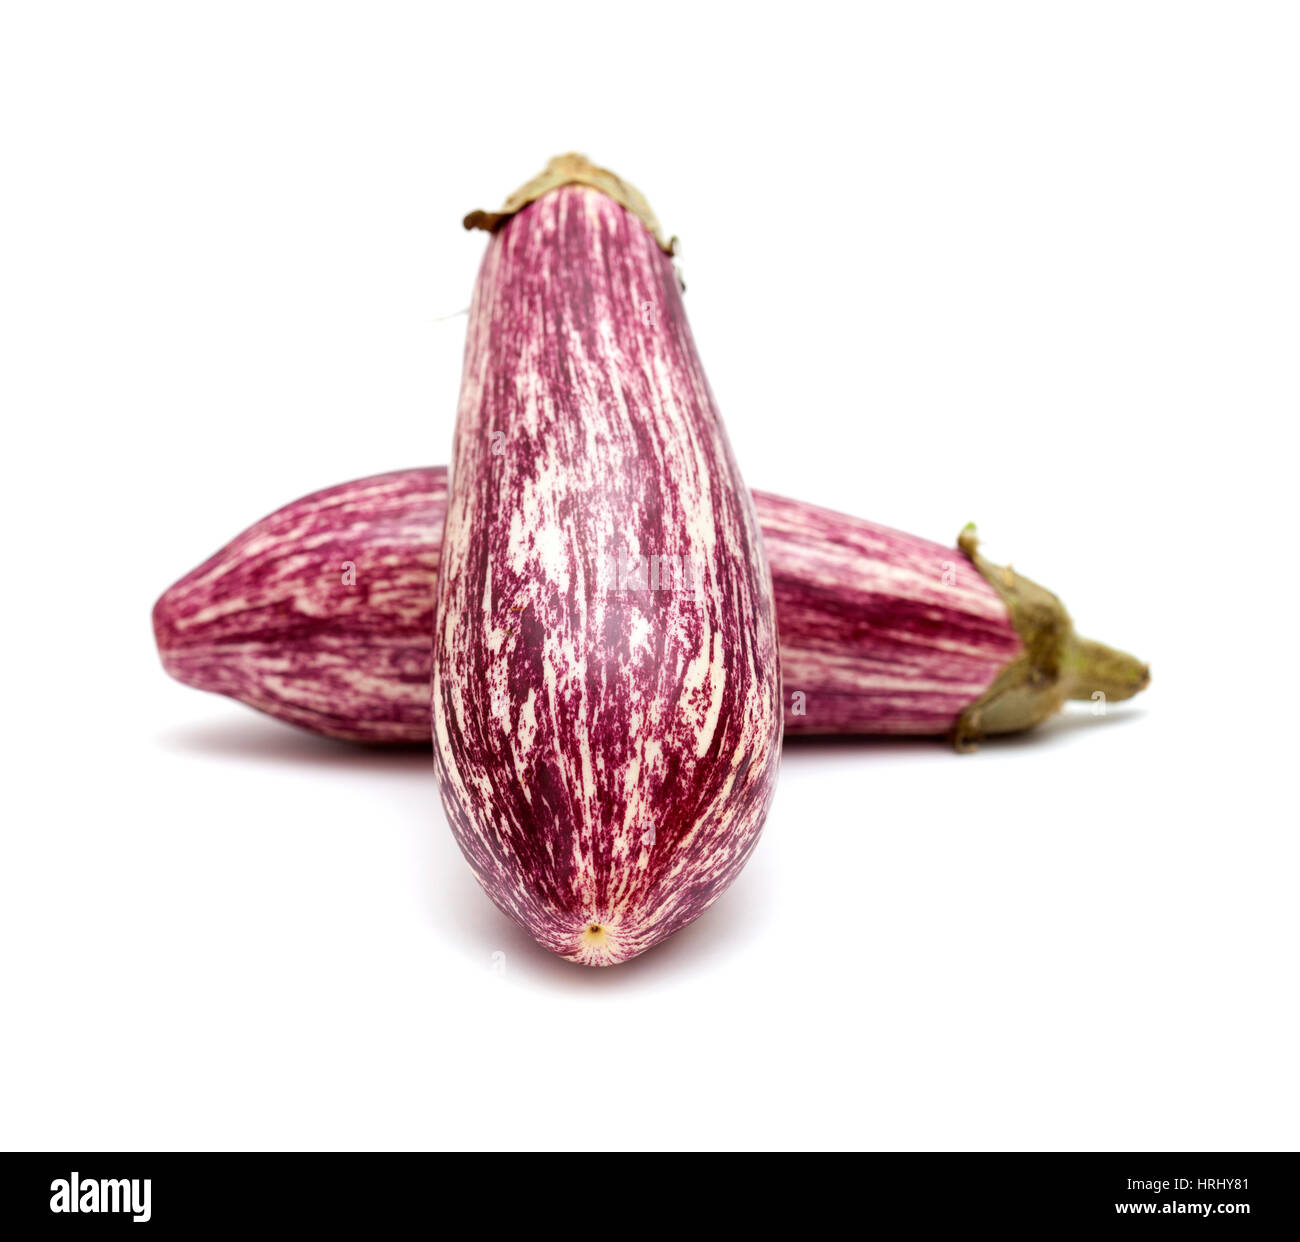 images of eggplant.html